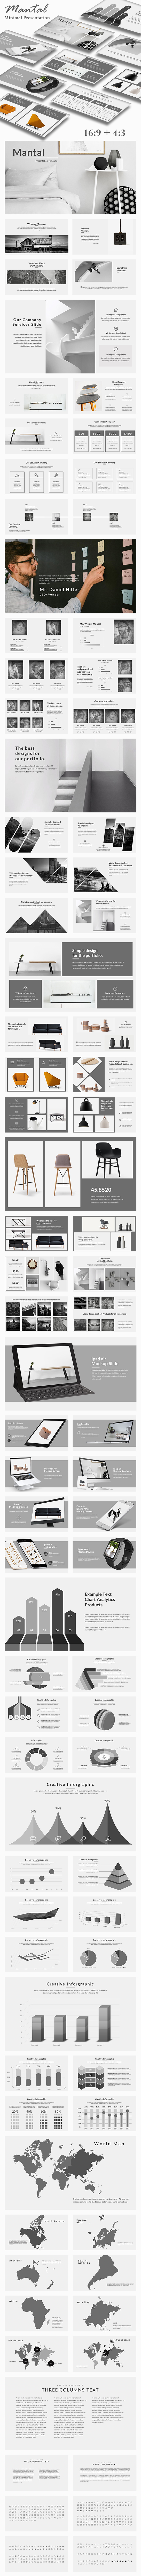 Mantal Minimal Powerpoint Template - Creative PowerPoint Templates